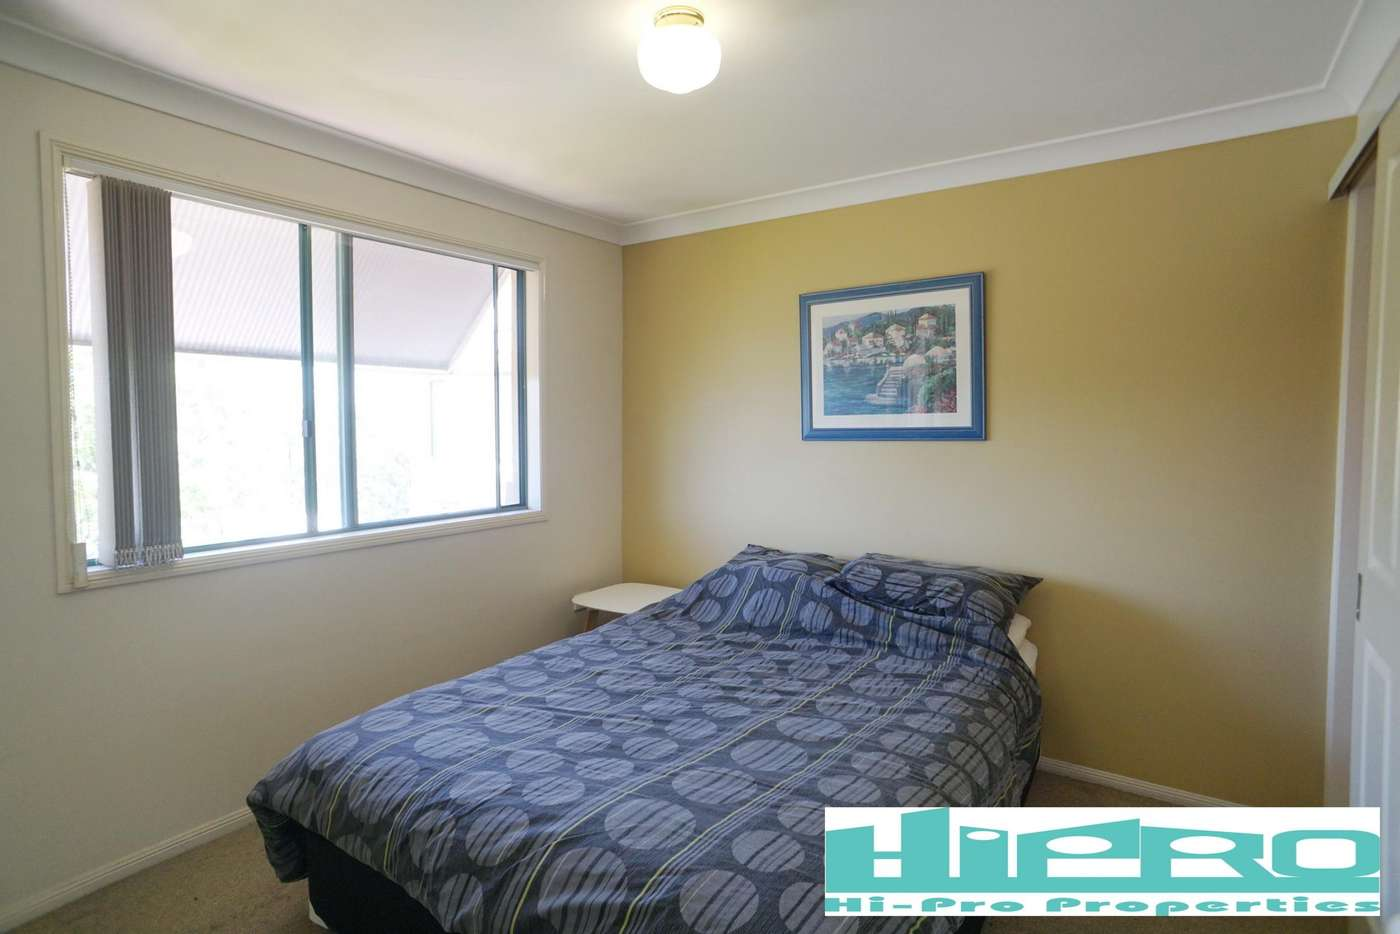 Sixth view of Homely apartment listing, 51 Leopard Street, Kangaroo Point QLD 4169